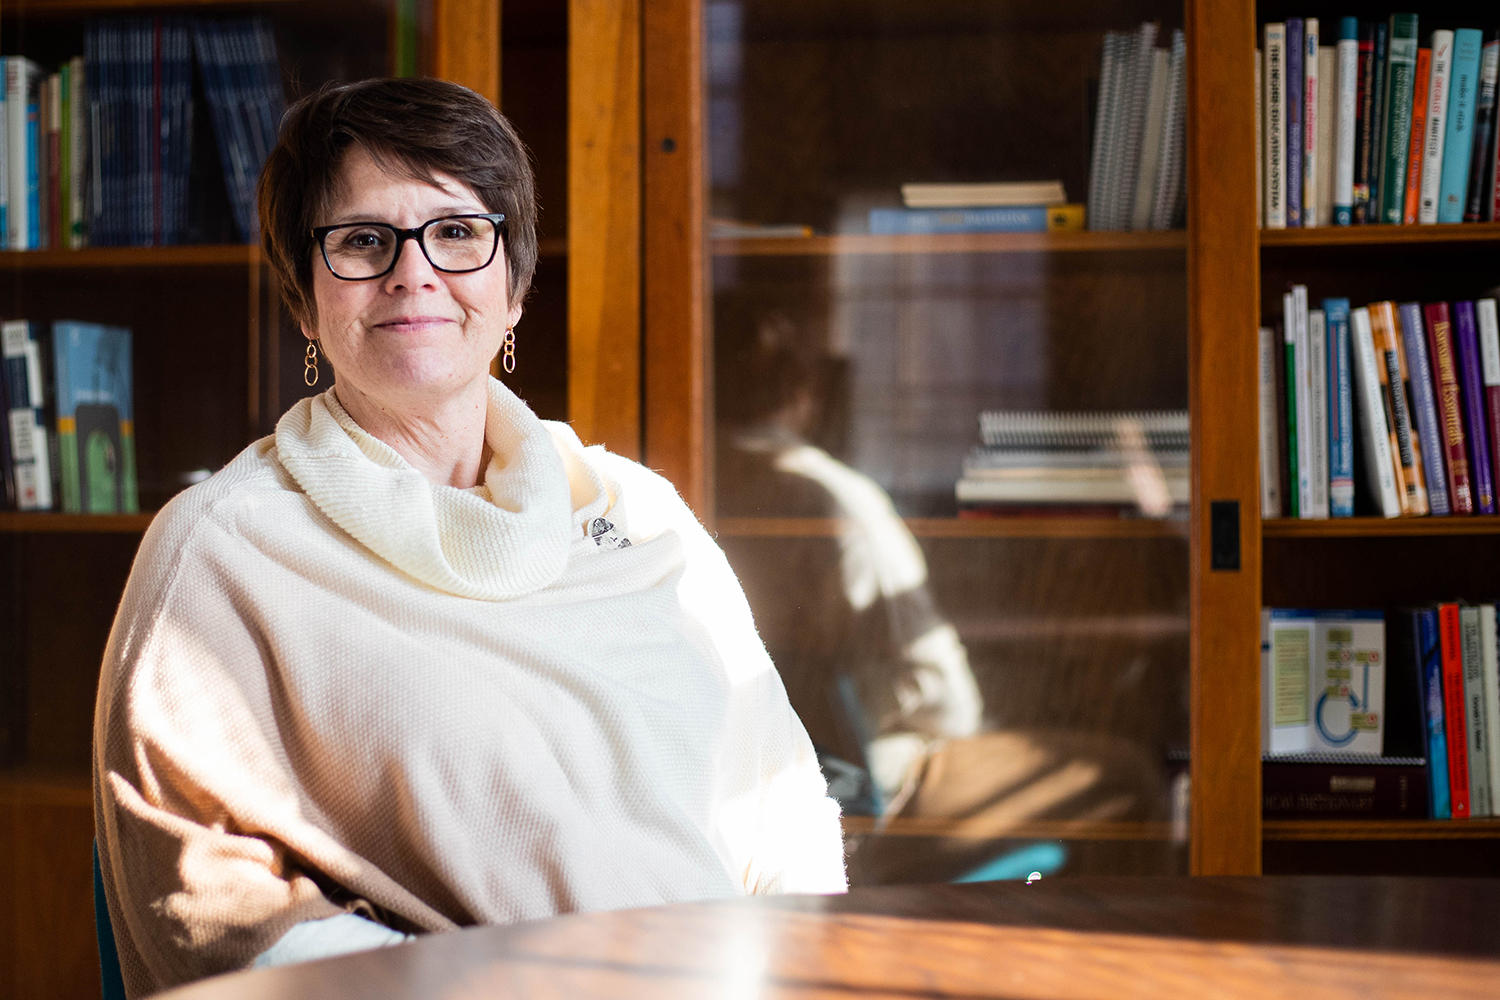 Jane Miller, Director of the Office of Consultation and Research in Medical Education, poses for a portrait on Monday December 2, 2019.